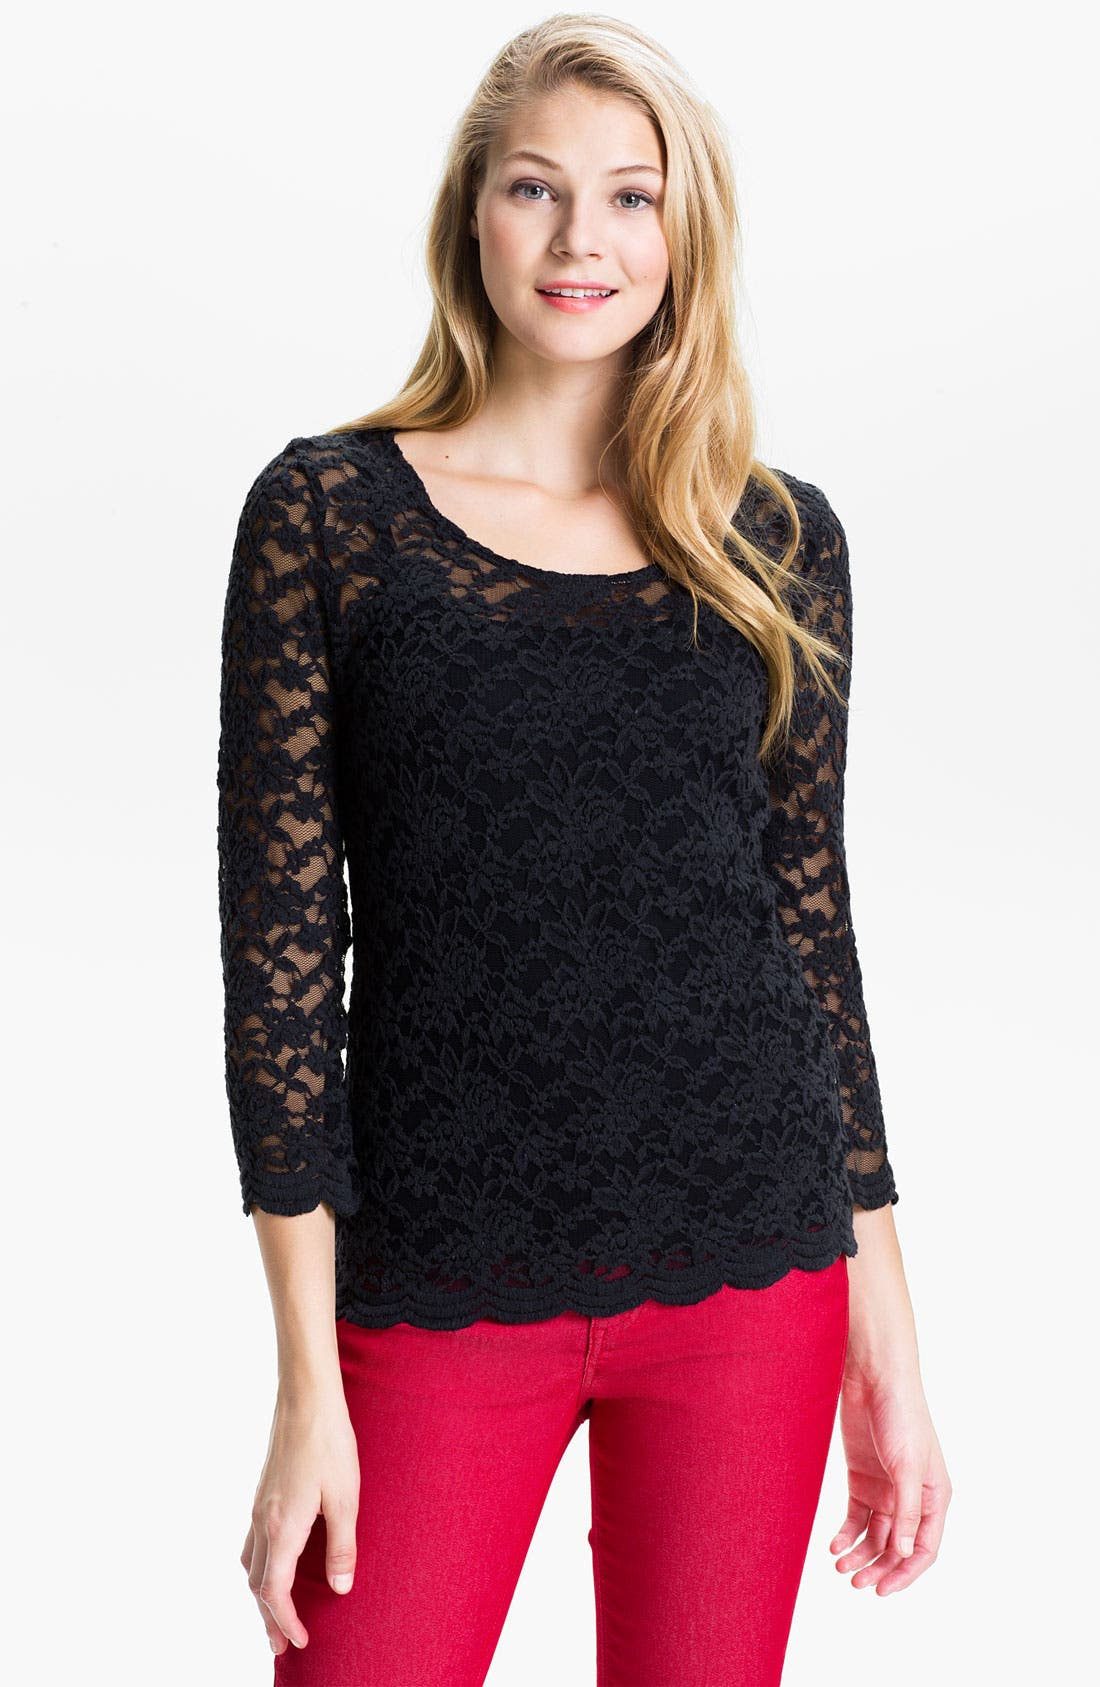 Alternate Image 1 Selected - KUT from the Kloth 'Mariela' Lace Top (Online Exclusive)